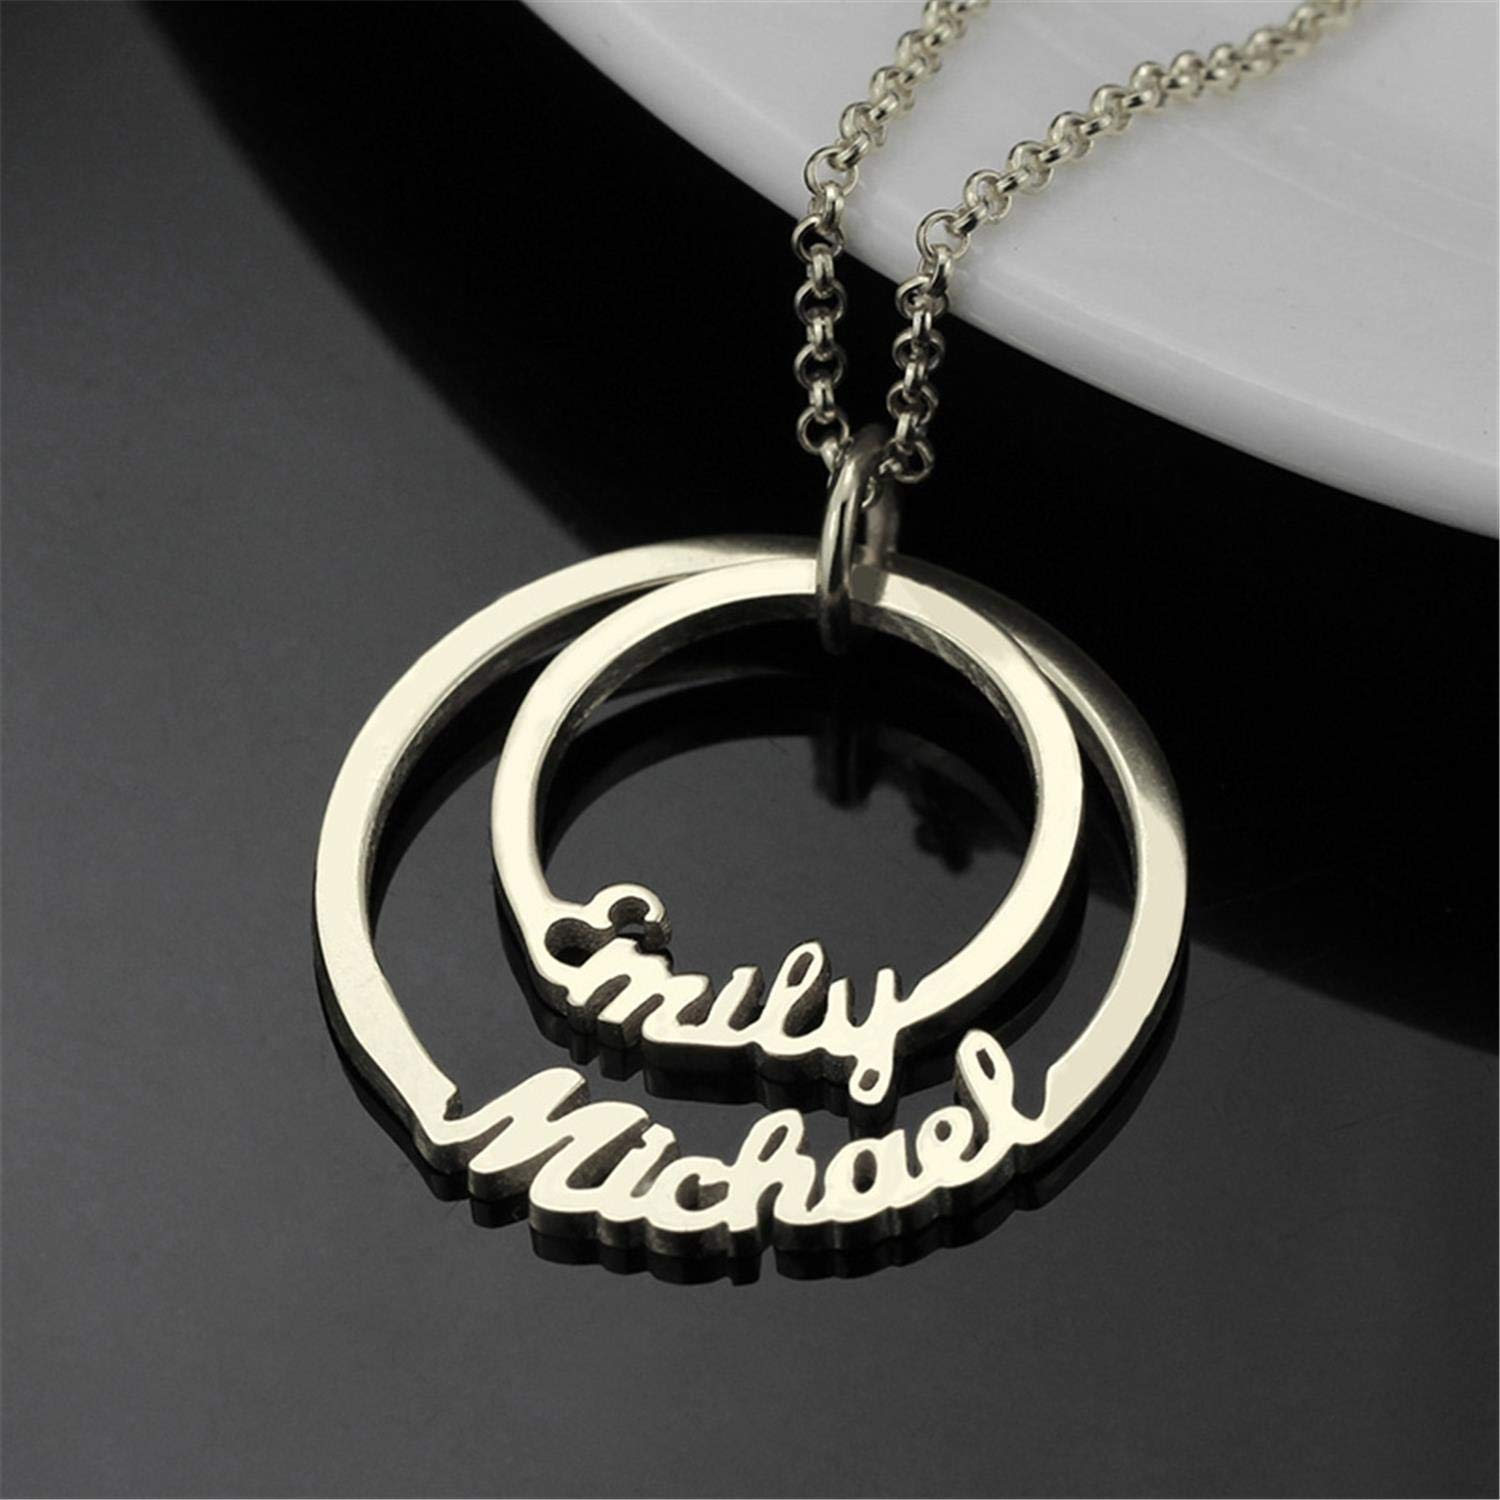 Getname Necklace Two Circle of Life Double Name Necklace Custom 2 Disc Name Necklace Personalized Name Necklace